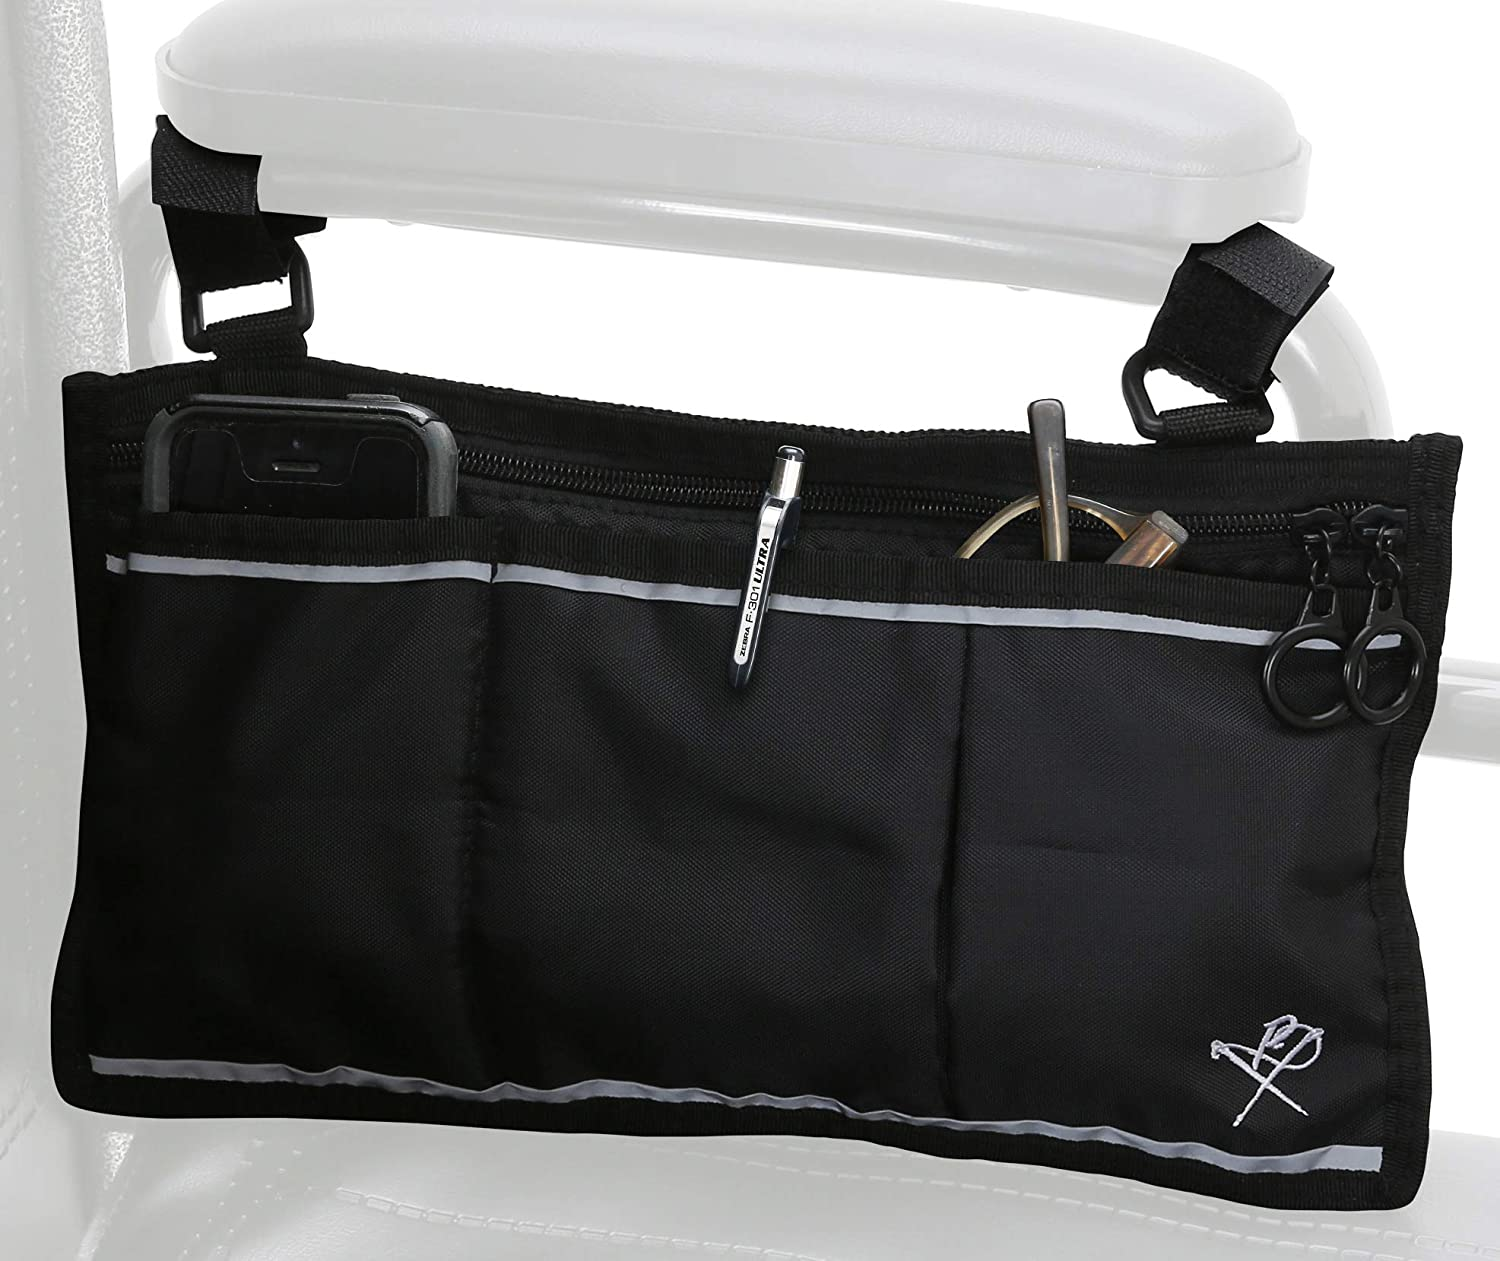 Pembrook Wheelchair Side Bag with Pouches - Great for Electric Wheelchairs